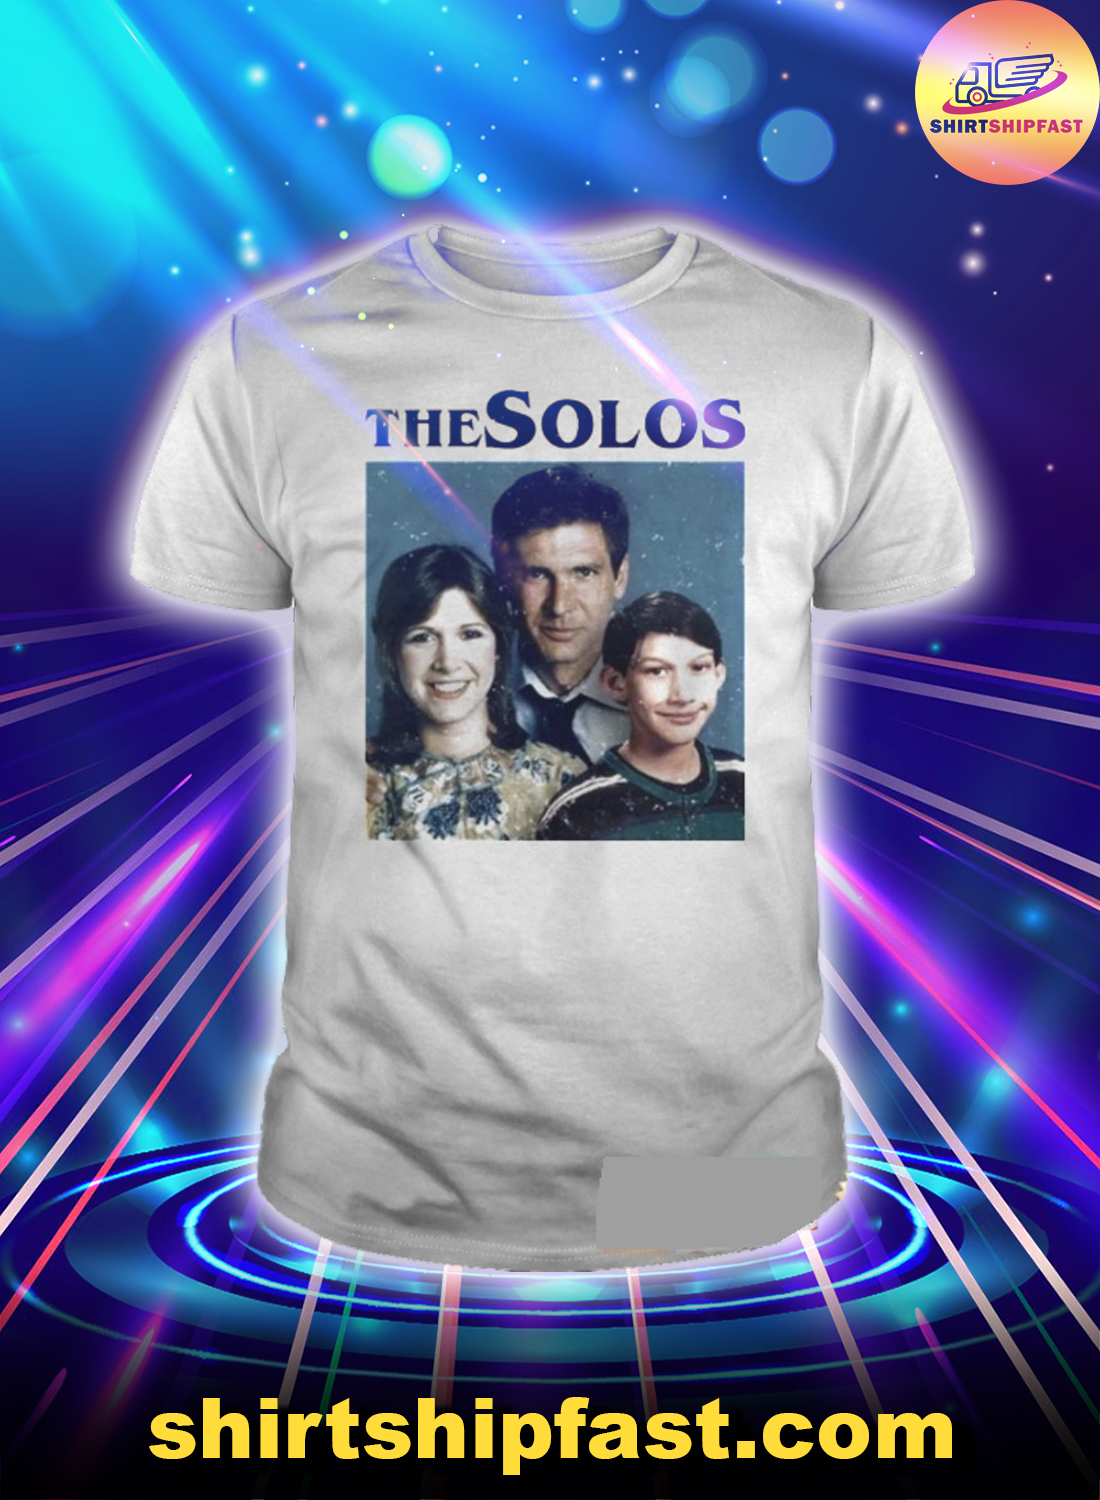 The solos han solo princess leia kylo ren harrison ford adam driver carrie fischer family shirt